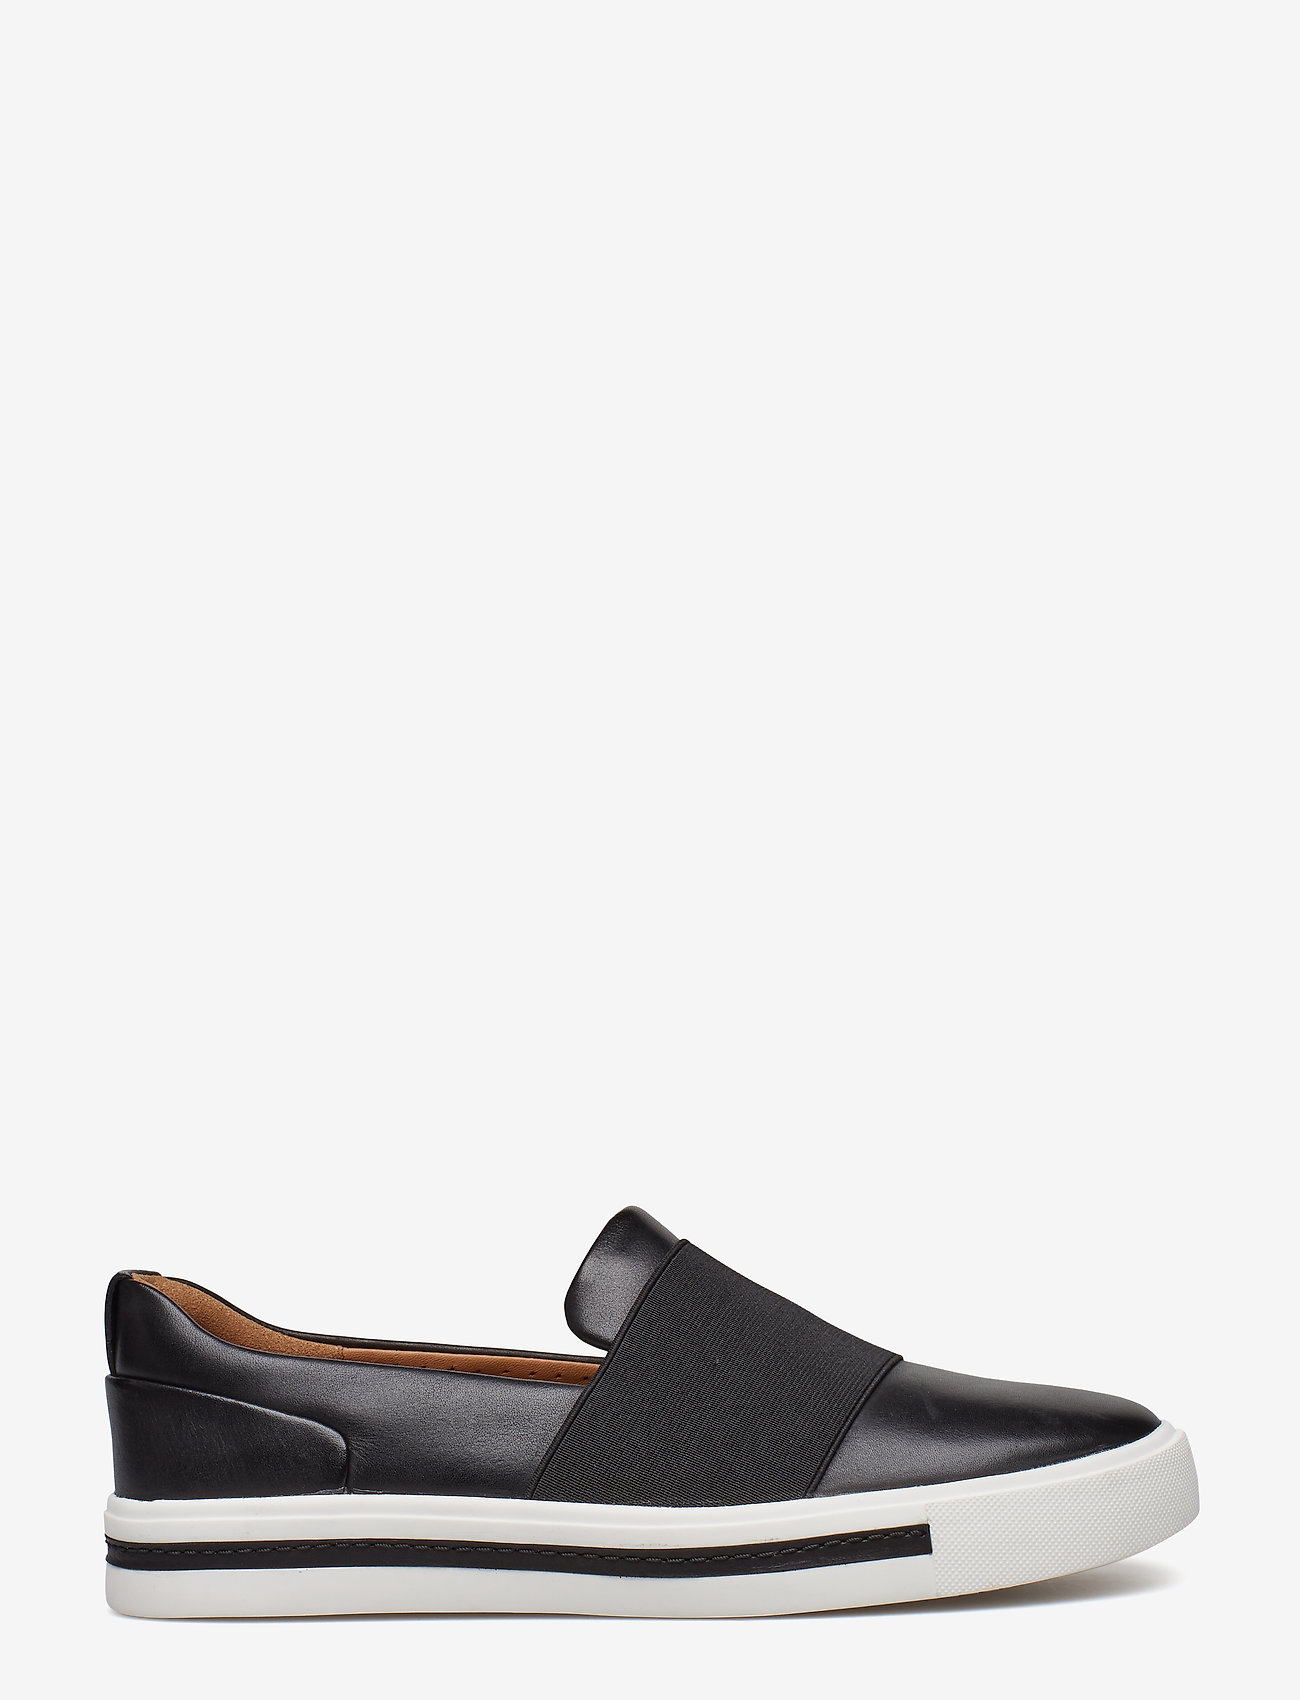 Clarks - Un Maui Step - slip-on sneakers - black leather - 1